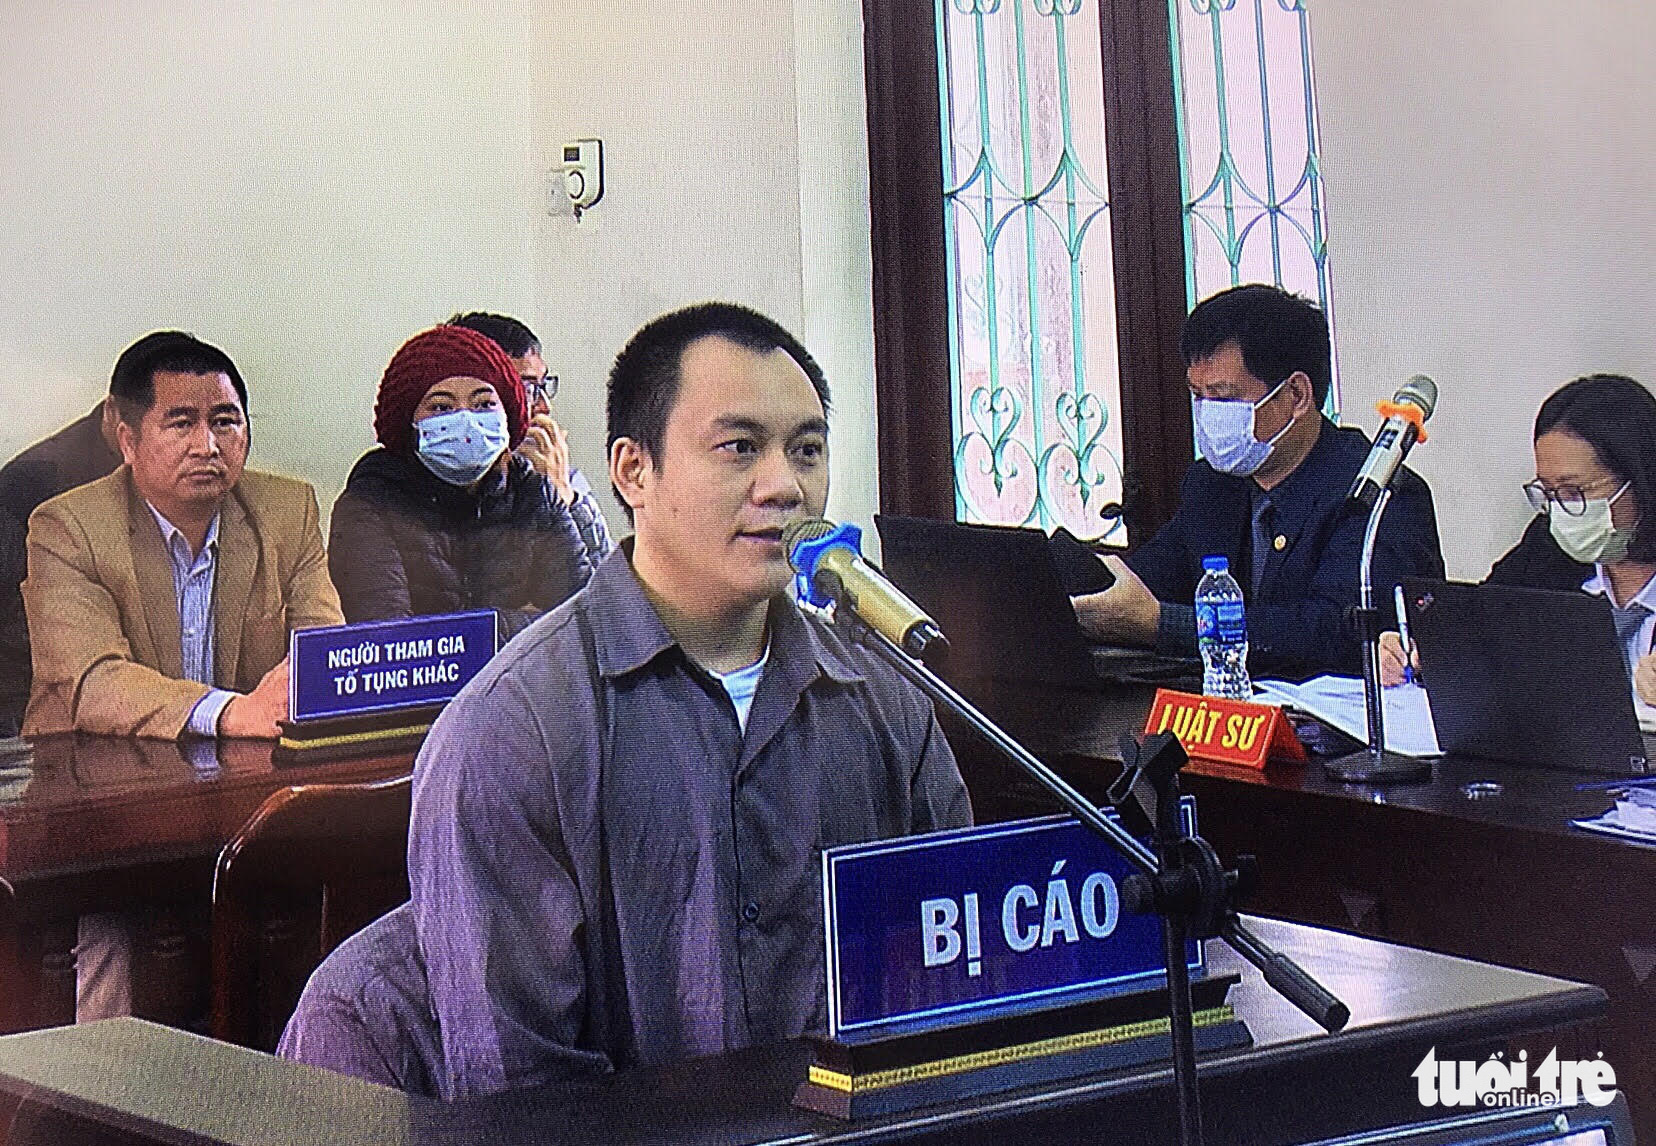 Truck, car drivers jailed over deadly 'reversing car' accident on northern Vietnamese expressway